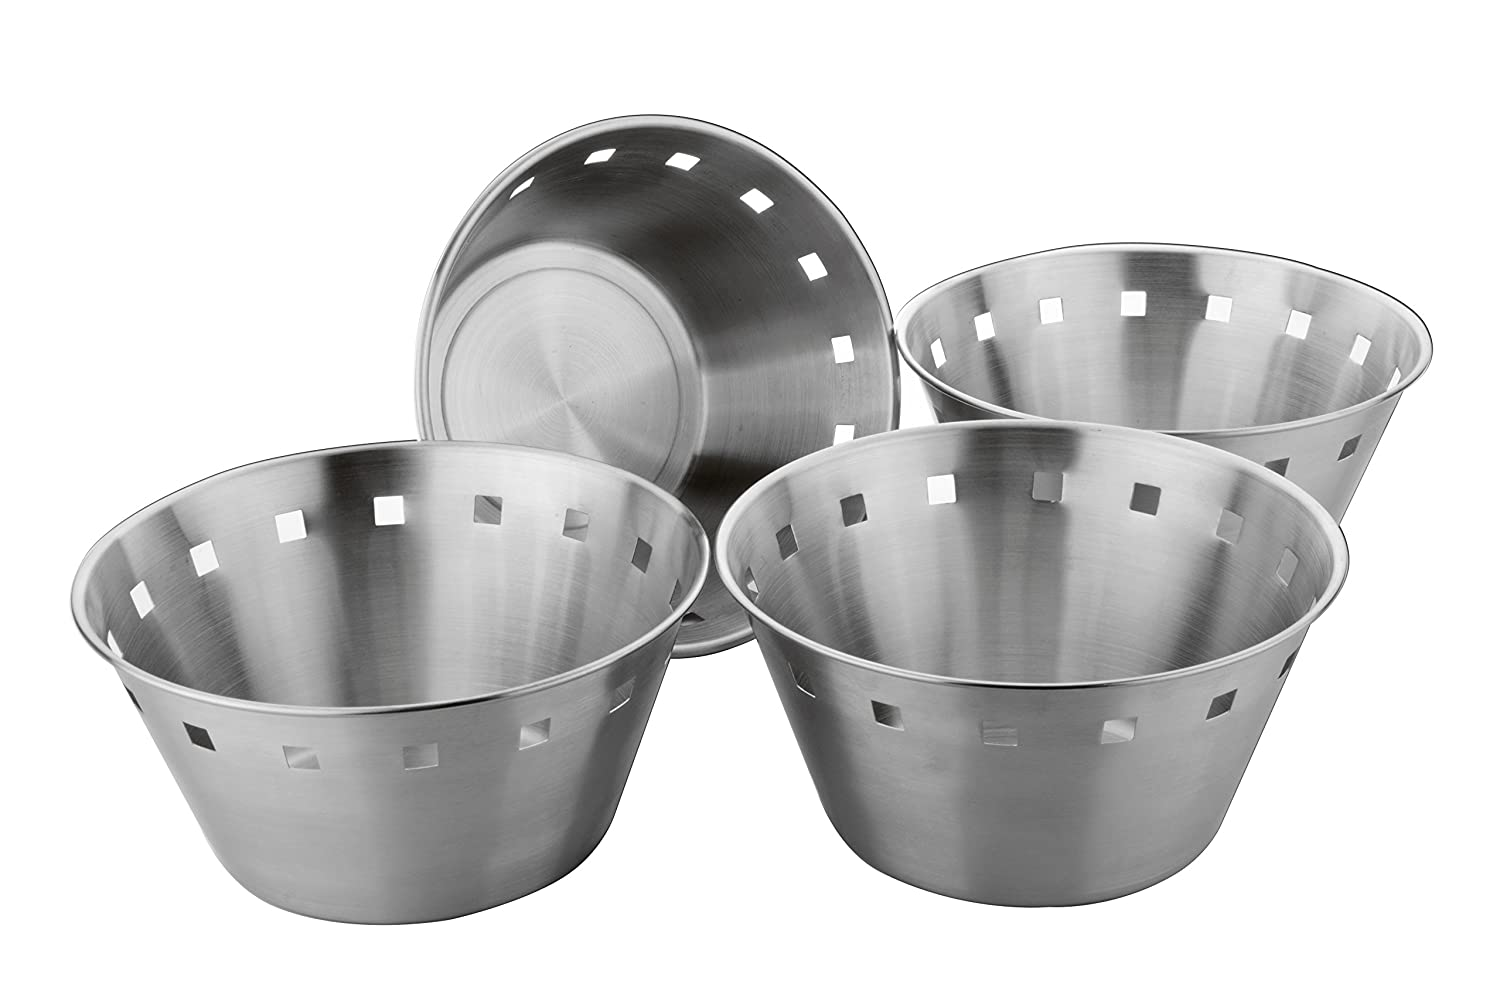 Bhalaria Stainless Steel Bread Basket Set, 19.5Cm, Set Of 4, Silver